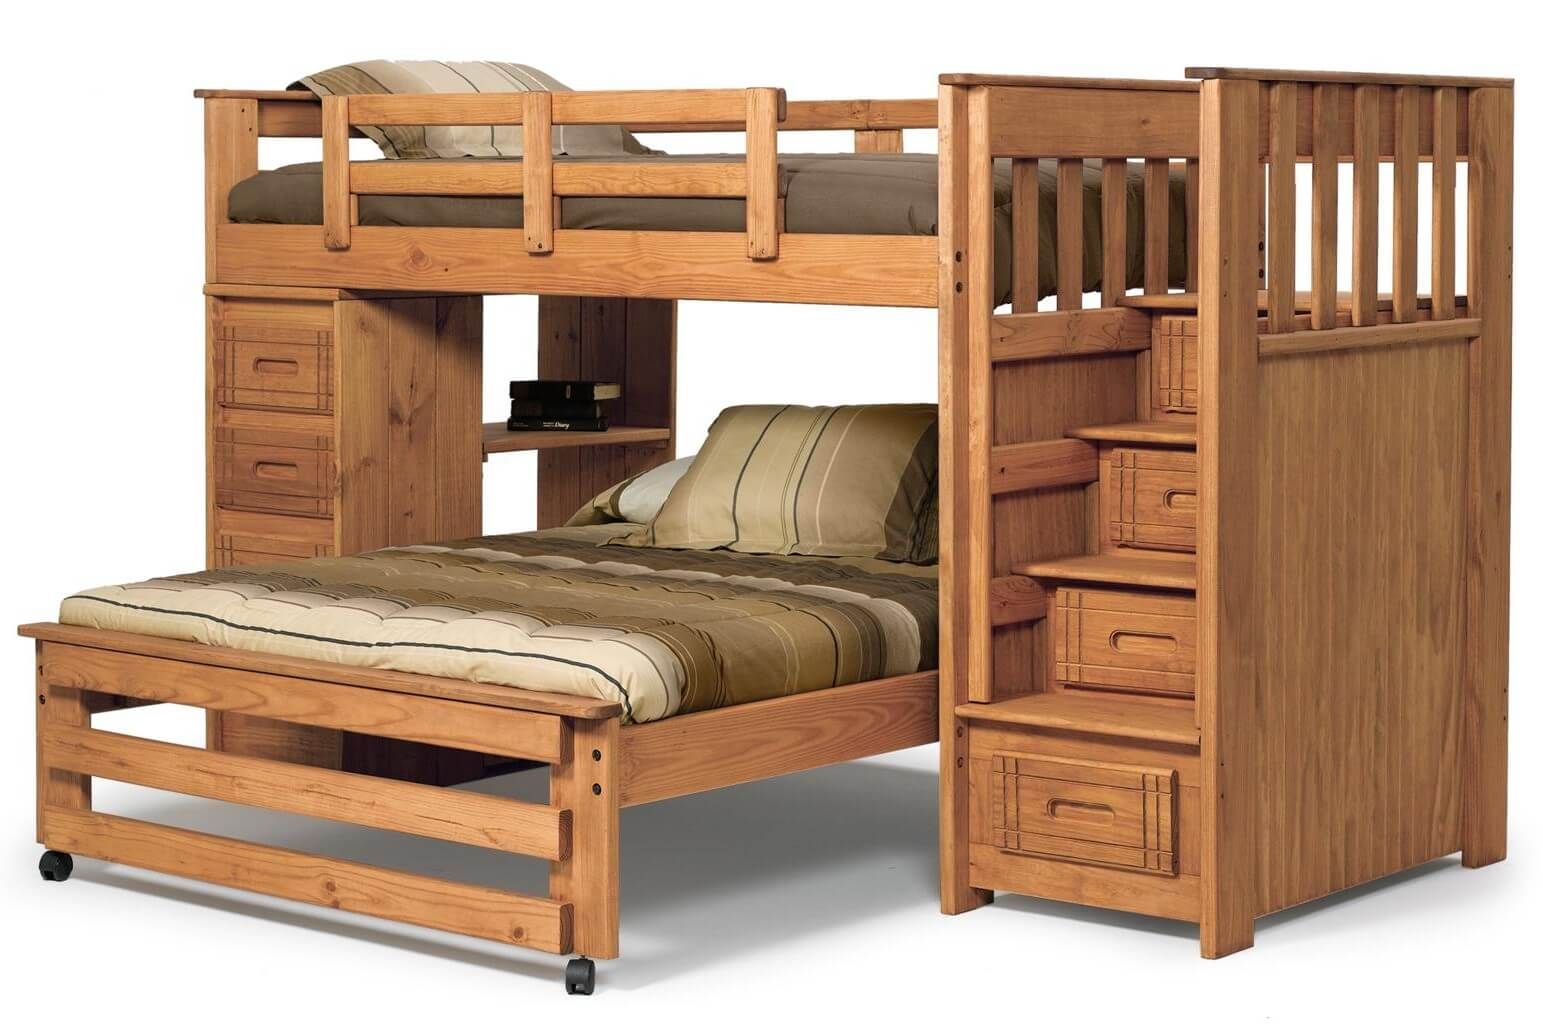 Here's a pine L-shaped bunk with twin over full. Instead of a ladder, there is a storage staircase to the upper bunk. The lower full bed is on wheels. The side opposite to the stairs includes drawers and open shelving.